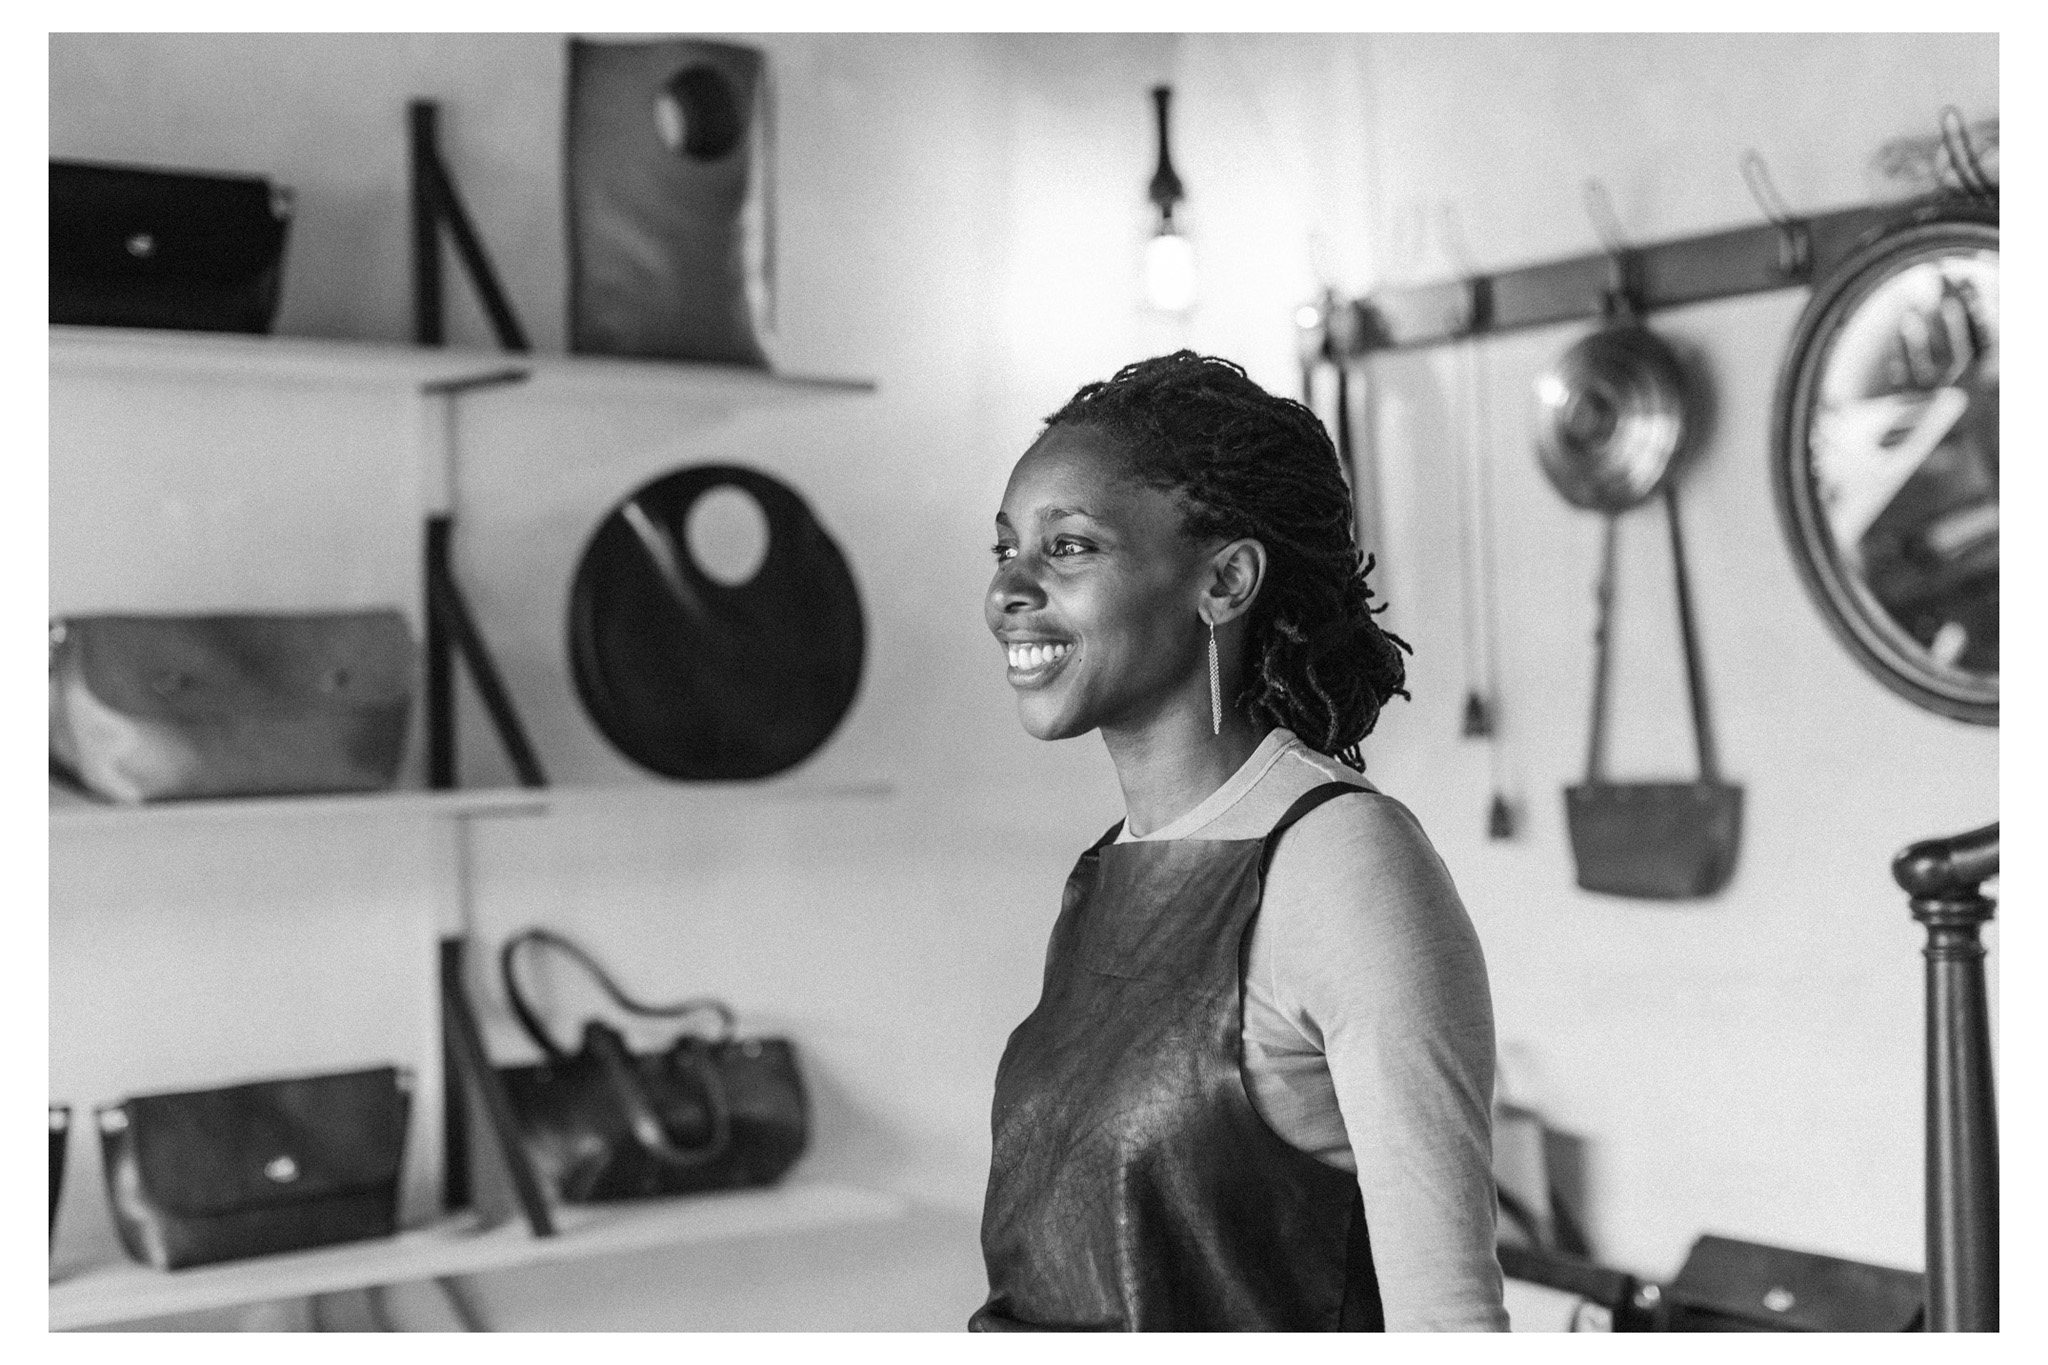 Neoma Design is a workshop and store in Brighton making and selling beautiful handmade leather bags and accessories. Photography by Emma Croman.